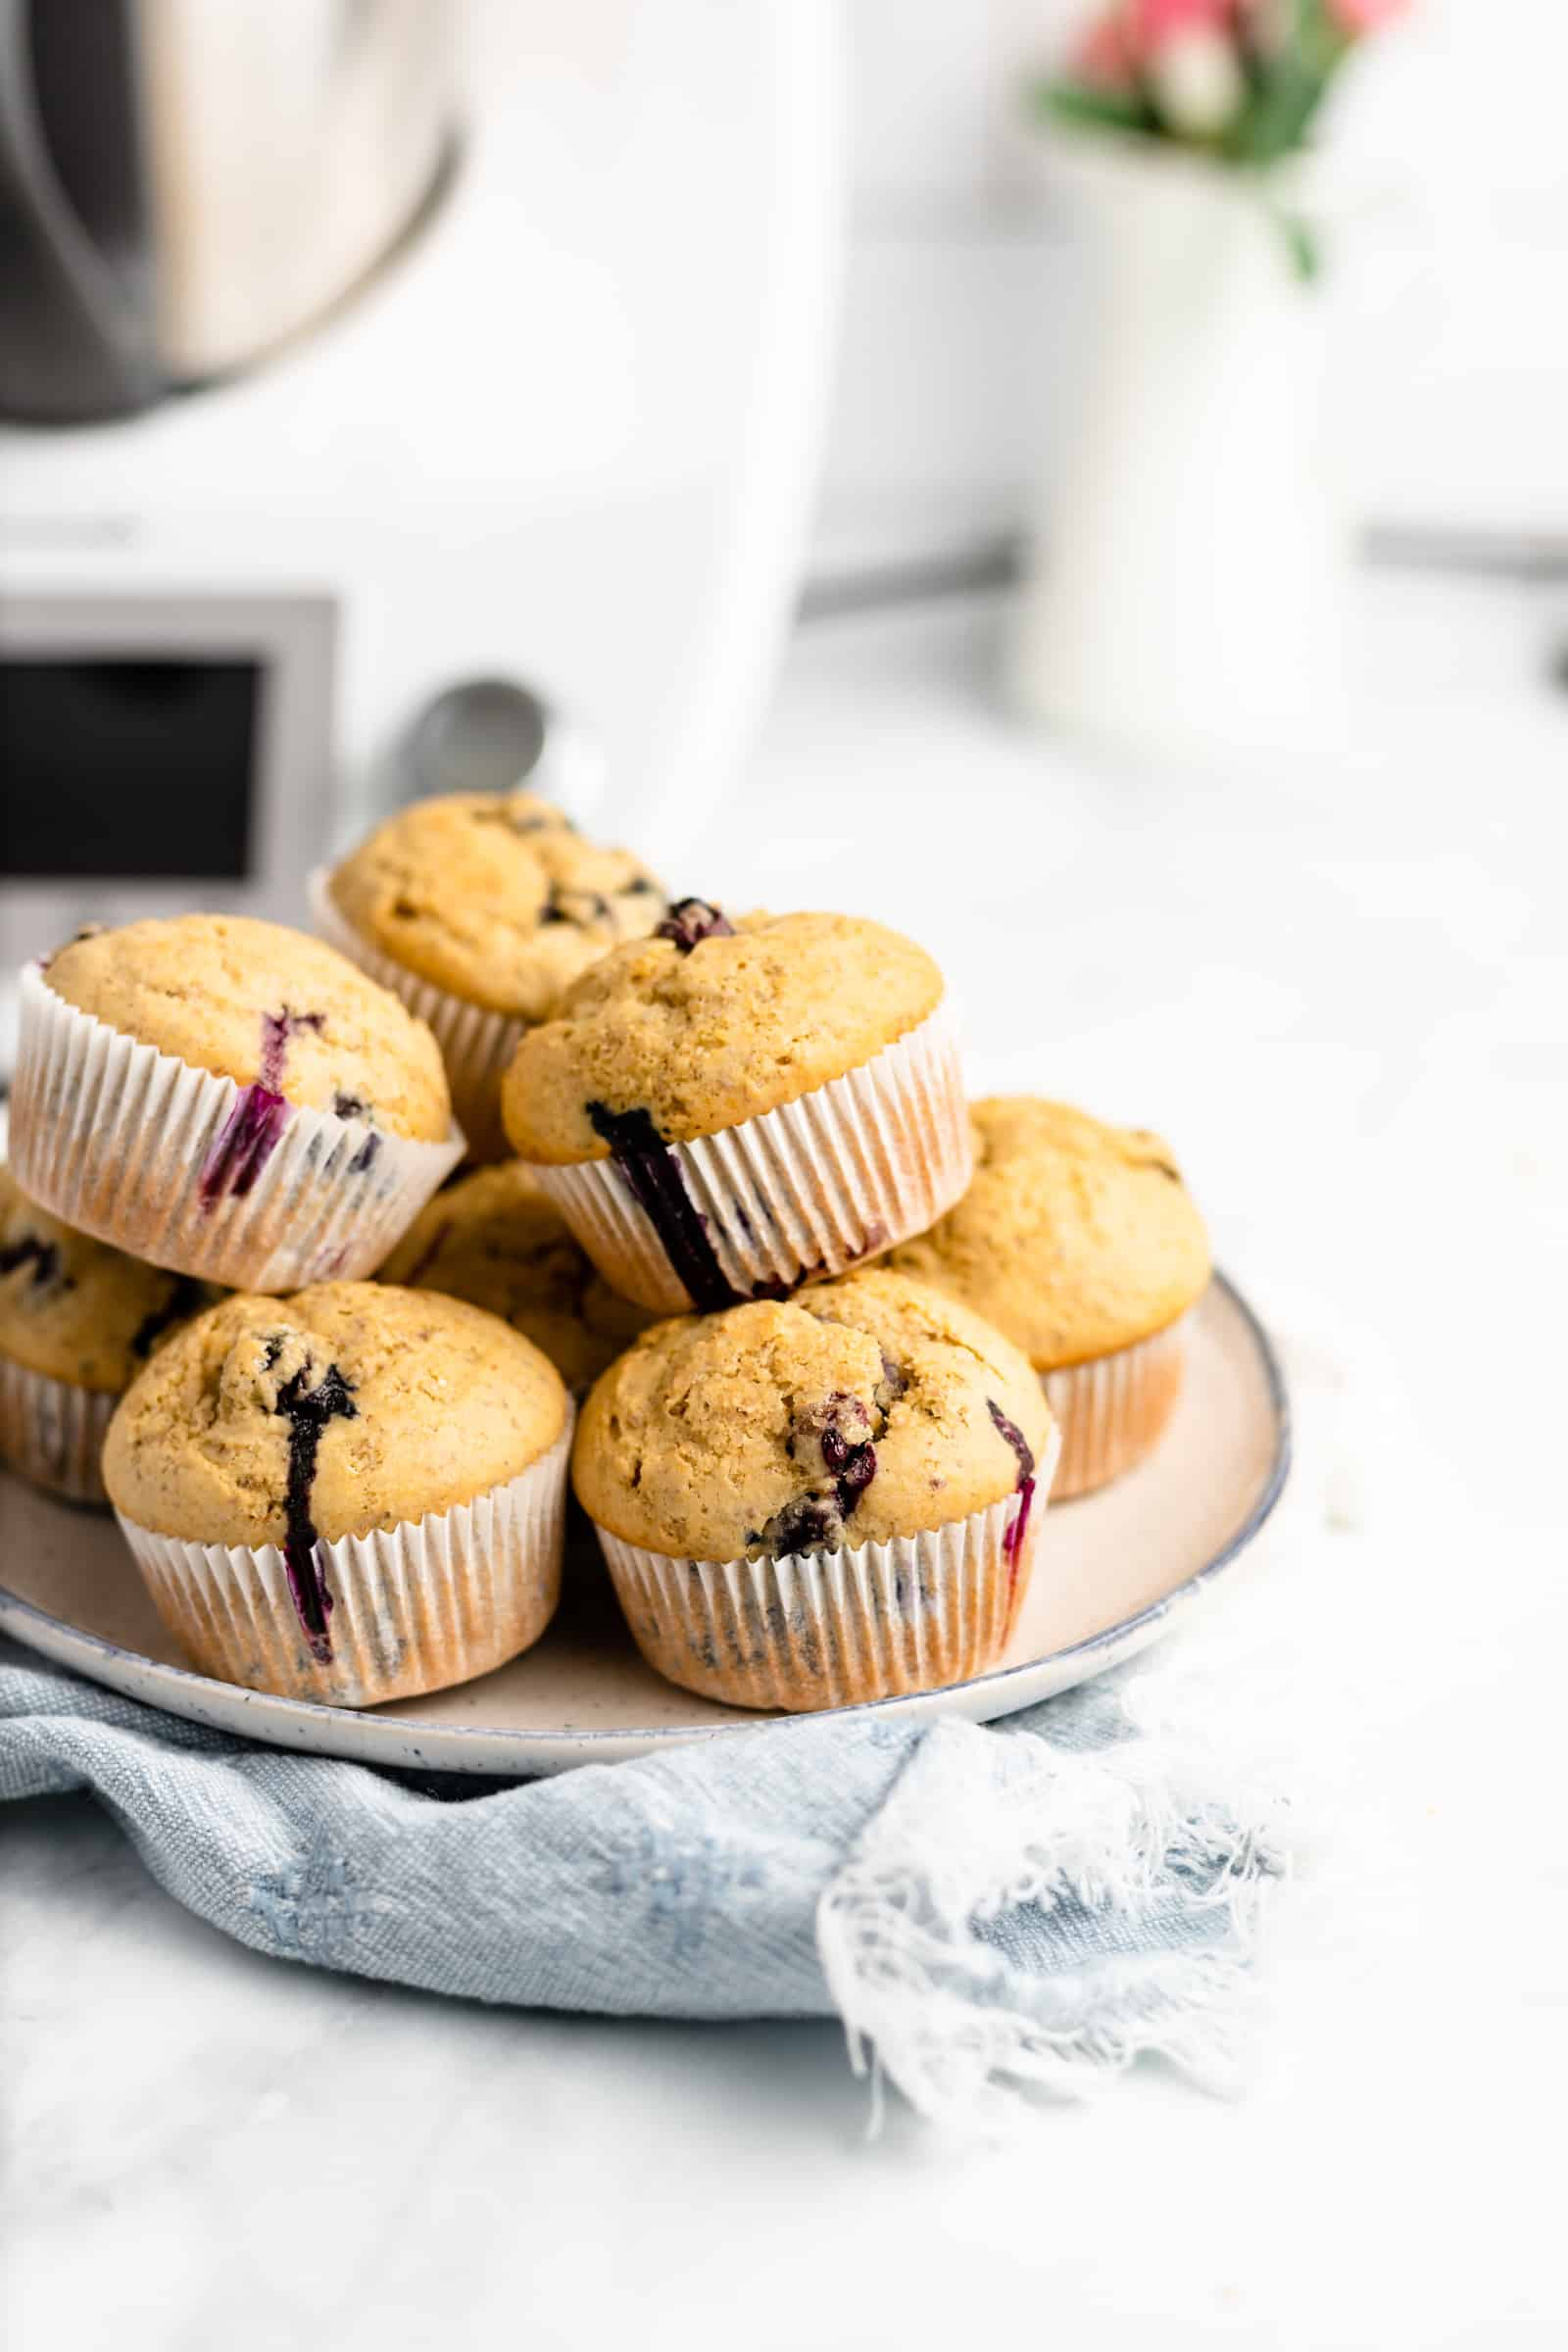 How to make Thermomix Blueberry Muffins